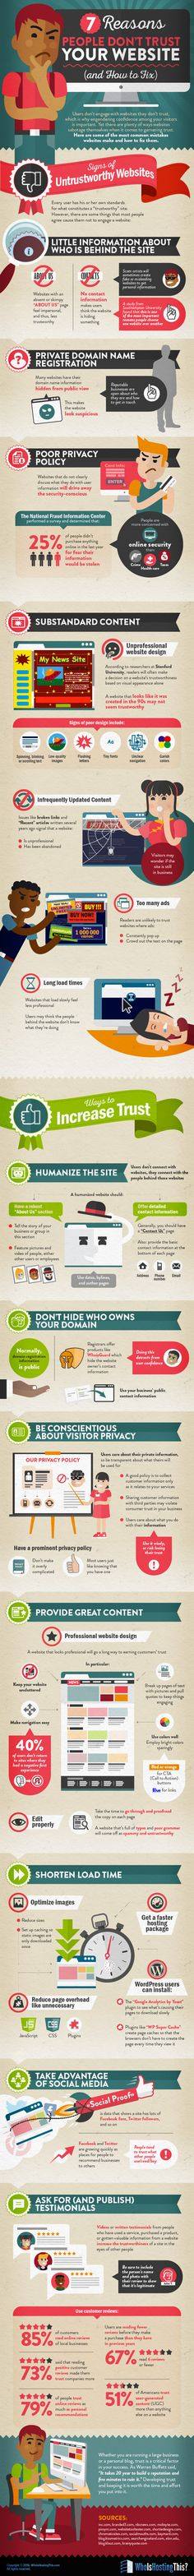 7 Reasons People Don't Trust Your Website #Infographic #Website